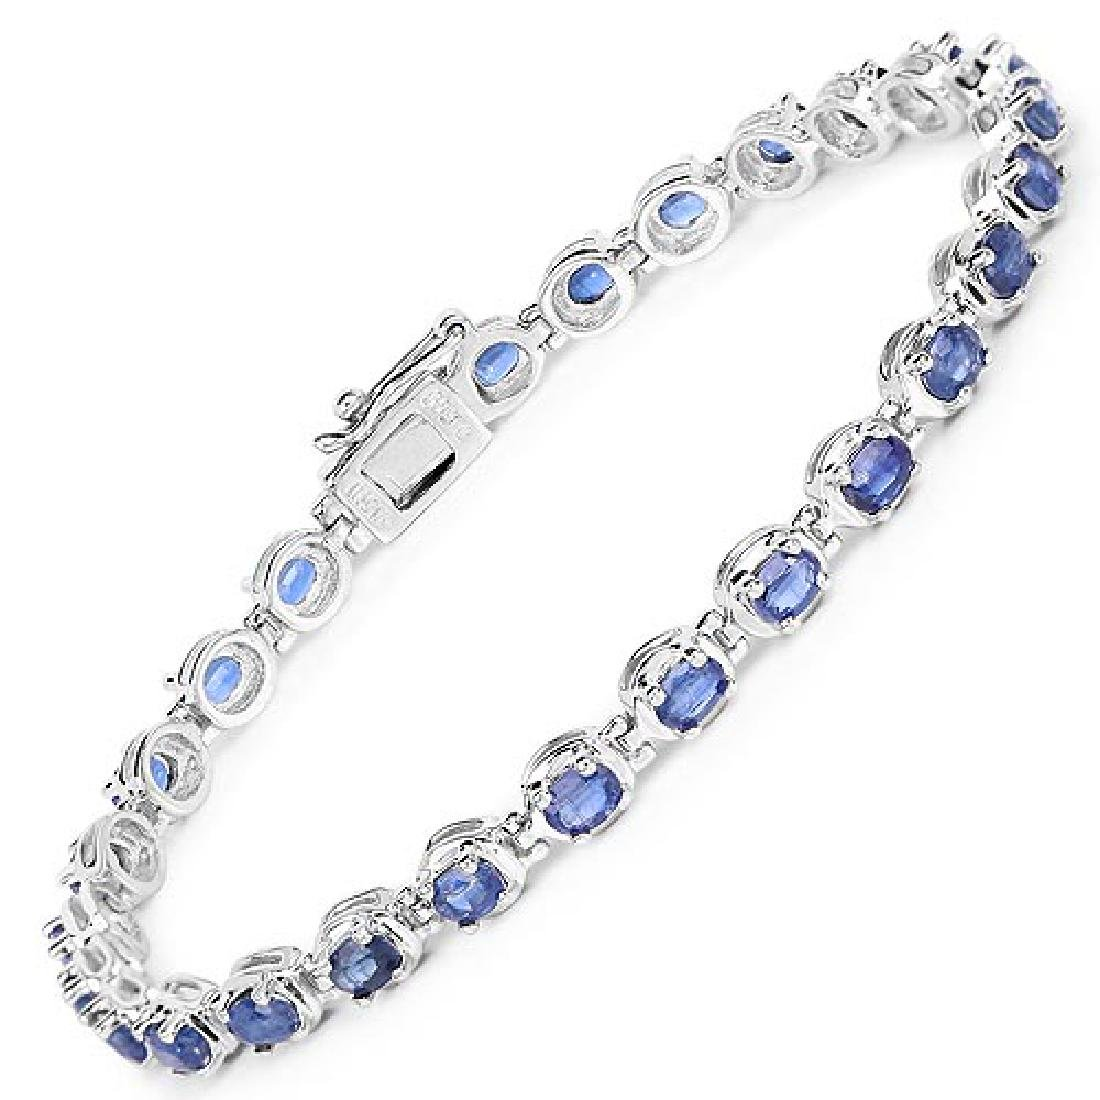 7.02 Carat Genuine Kyanite .925 Sterling Silver Bracele